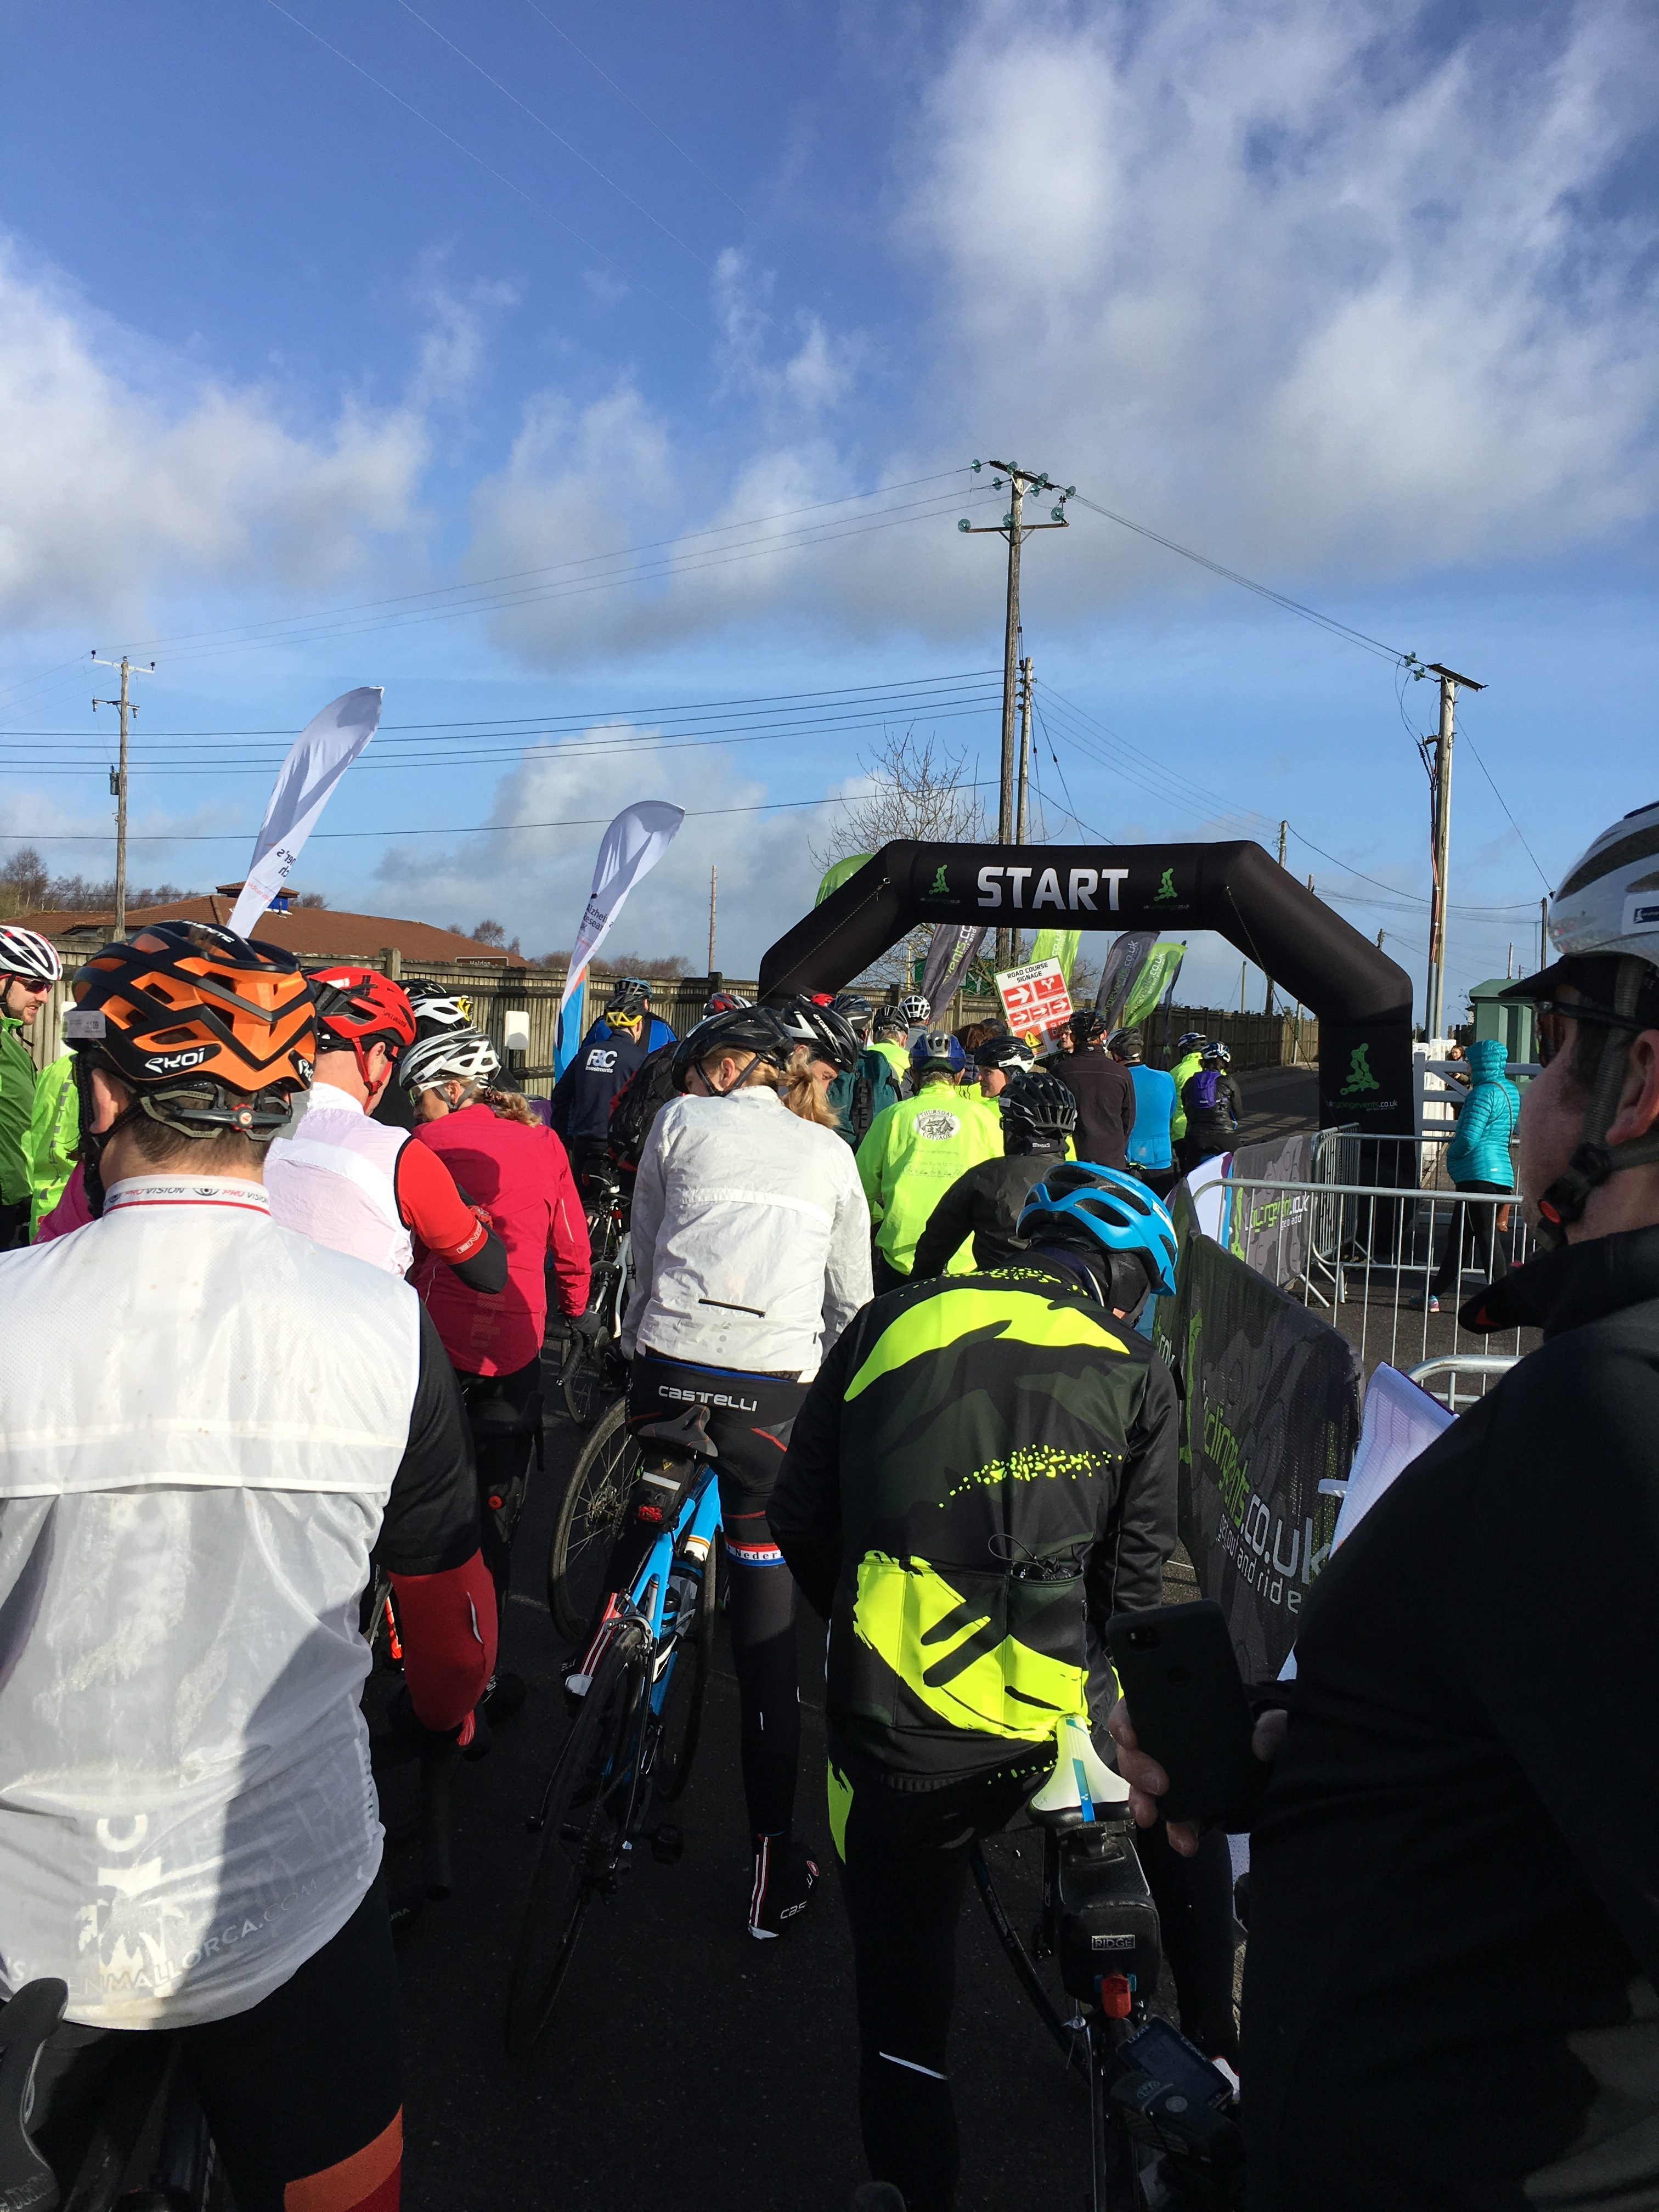 No Excuses South West Sportive Review